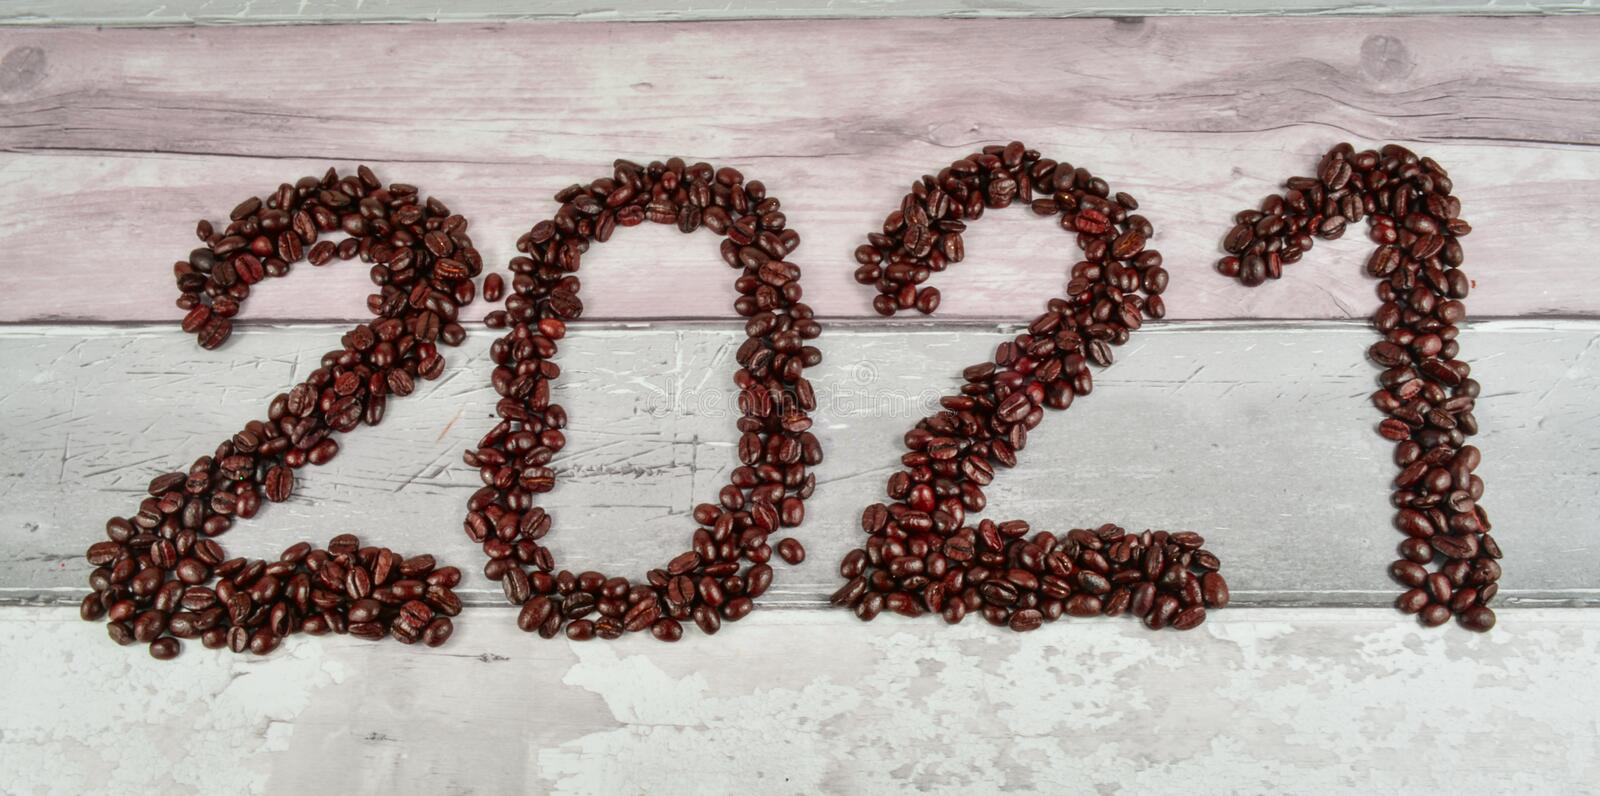 Coffee beans merry Christmas and 2020 happy new year royalty free stock image